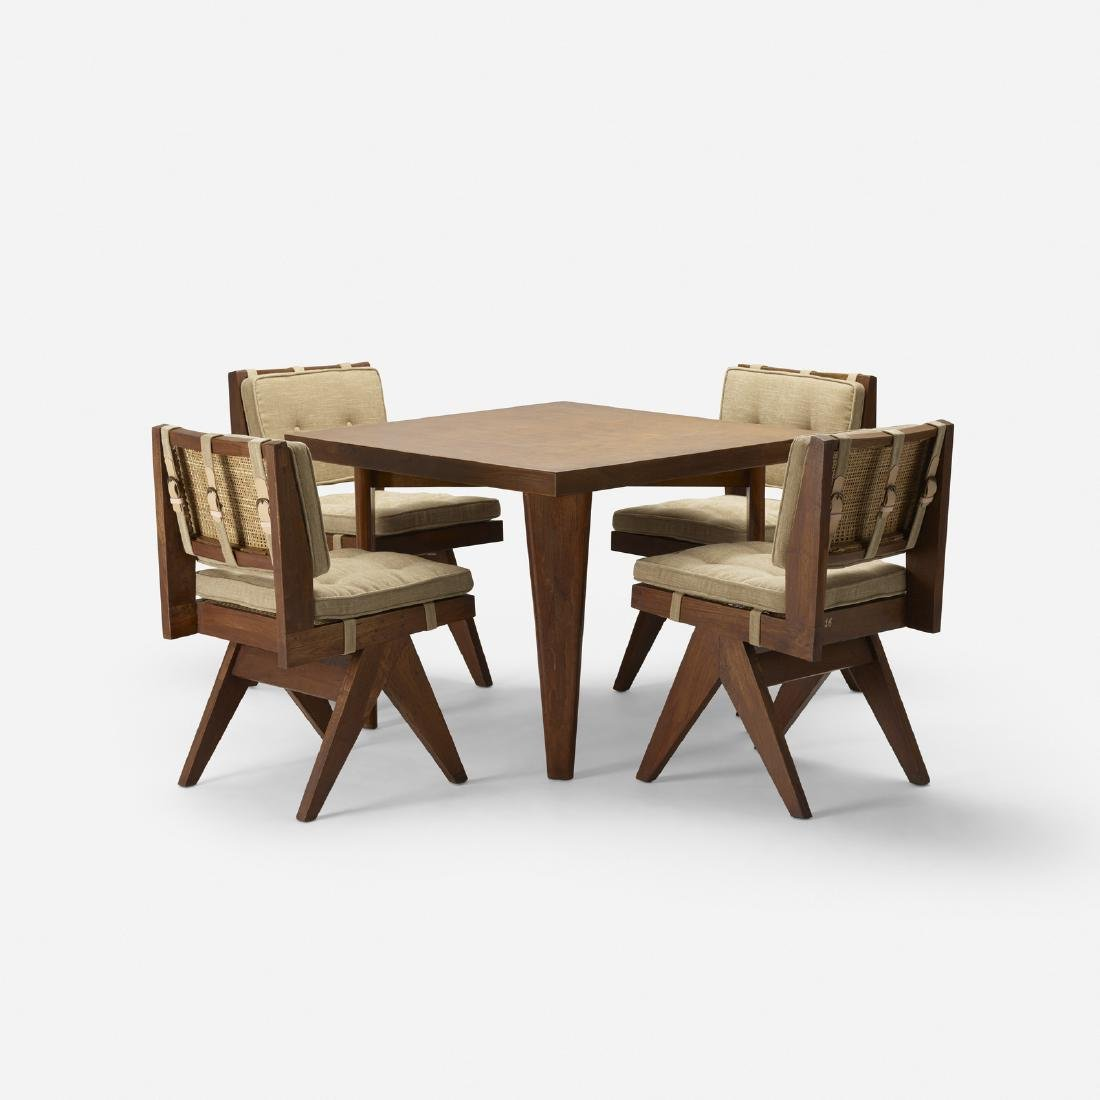 Pierre Jeanneret, table, four chairs, Chandigarh